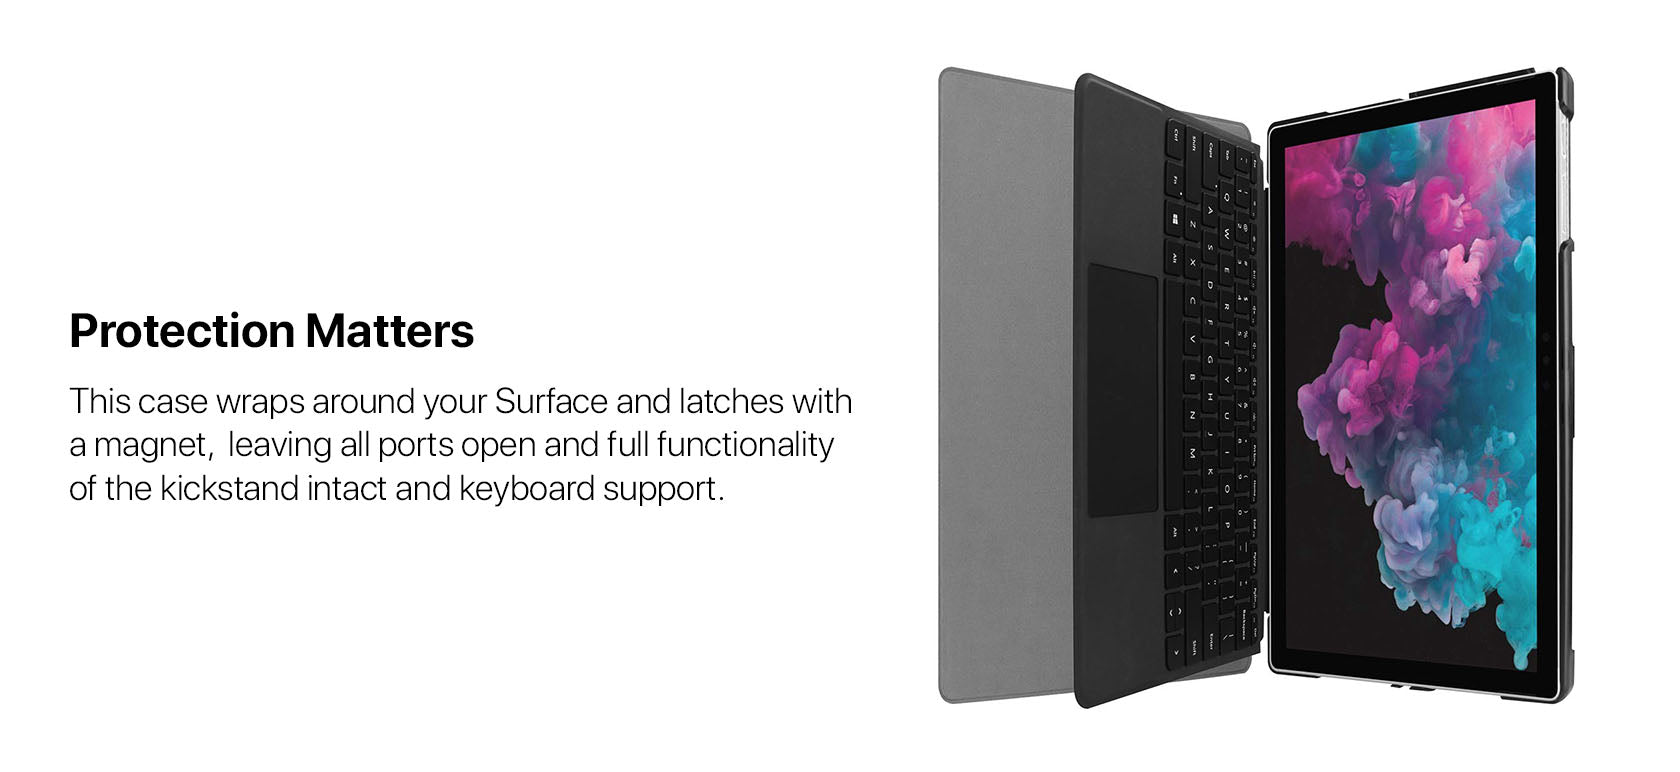 Protection Matters - This case wraps around your Surface and latches with a magnet,  leaving all ports open and full functionality of the kickstand intact and keyboard support.